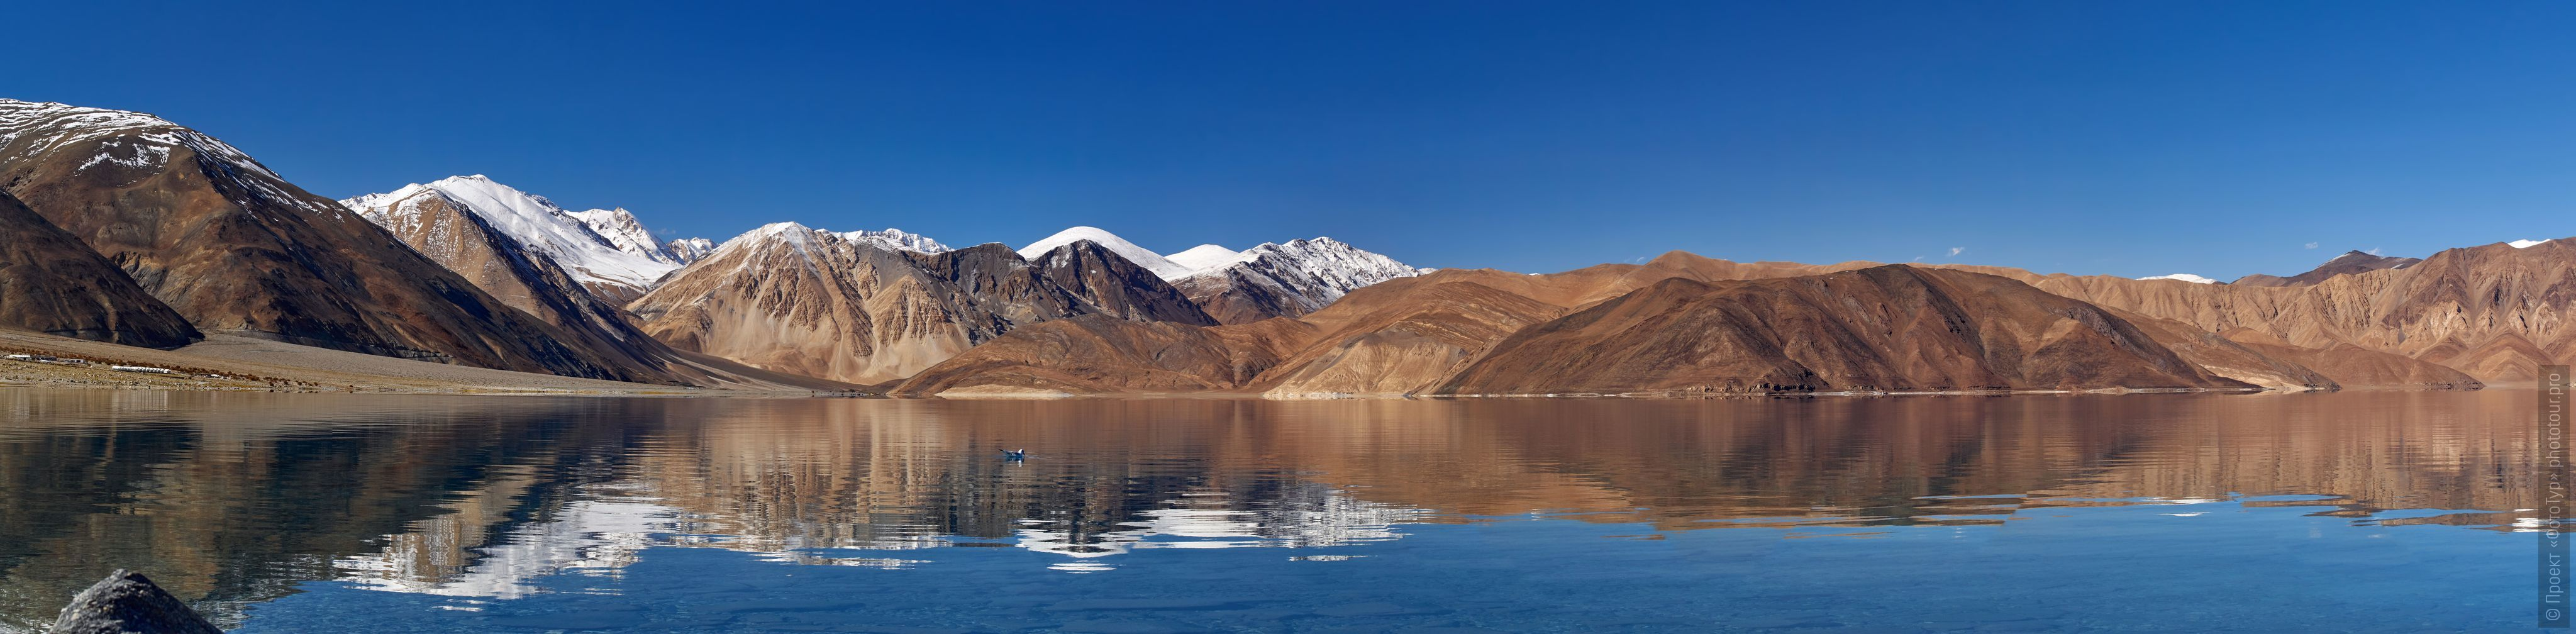 Pangong Tso Lake, Ladakh. Advertiser Tibet Lakes: Alpine lakes, geyser valley, Lamayuru, September 01 - 10.09. 2021.